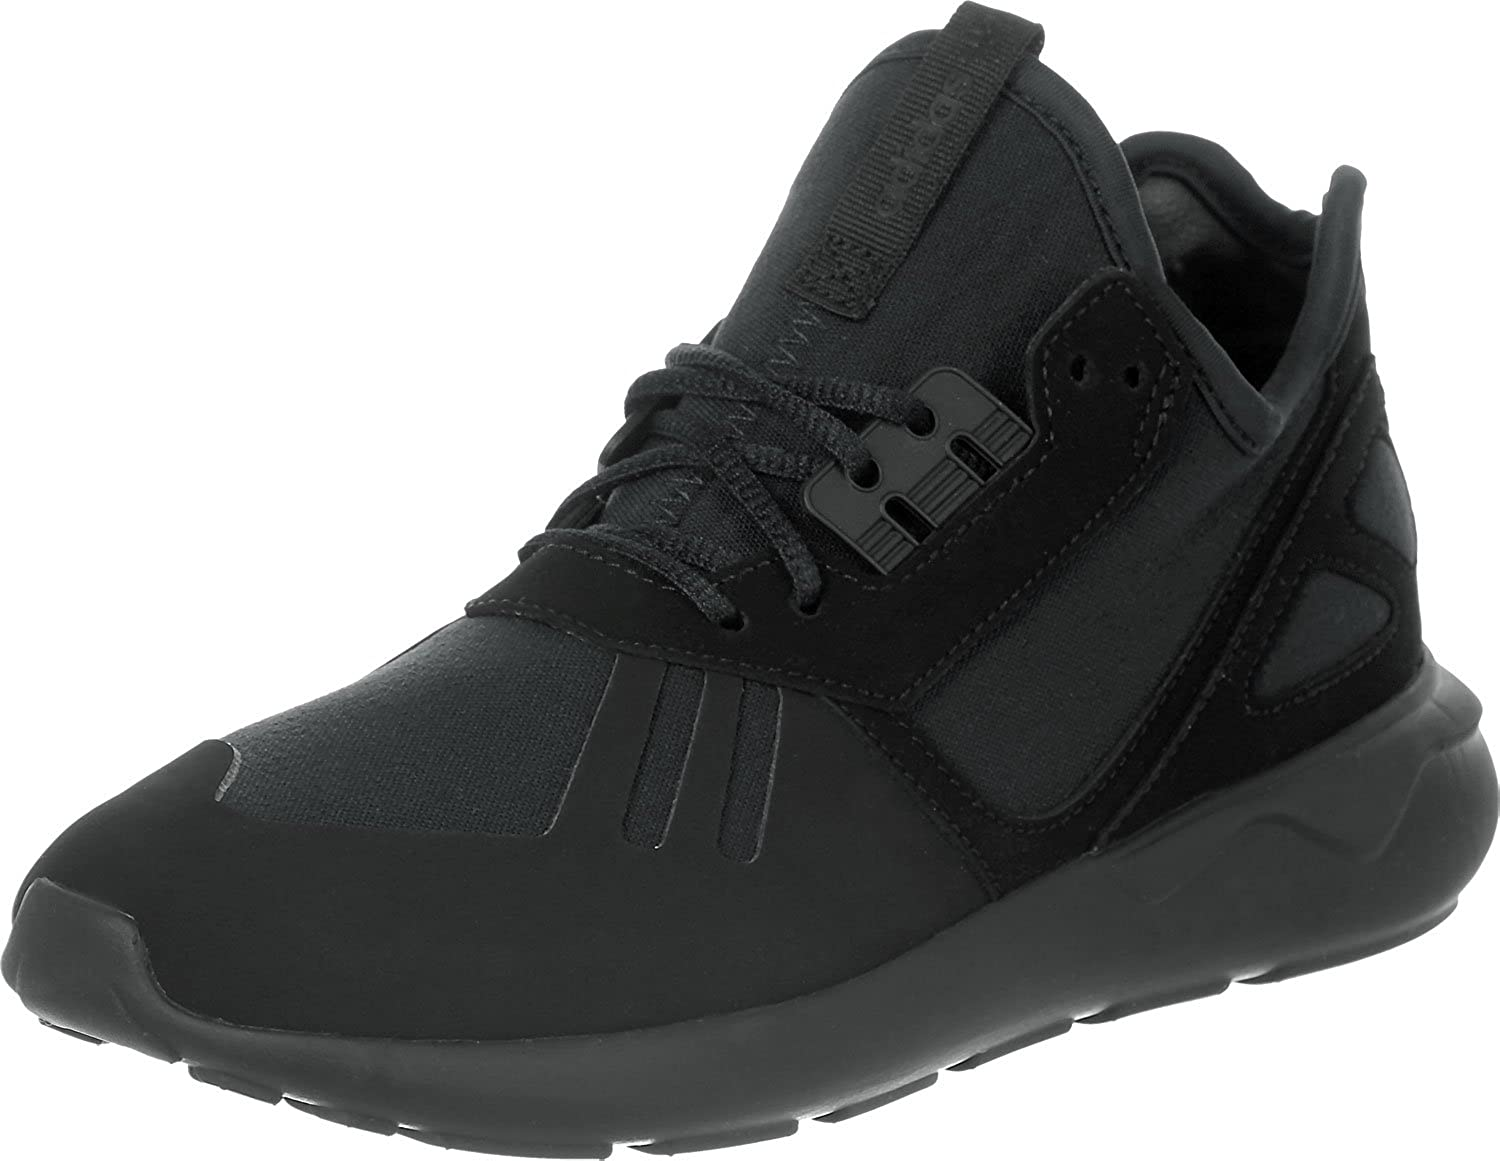 Adidas Originals Tubular Runner Youth Black Synthetic Trainers